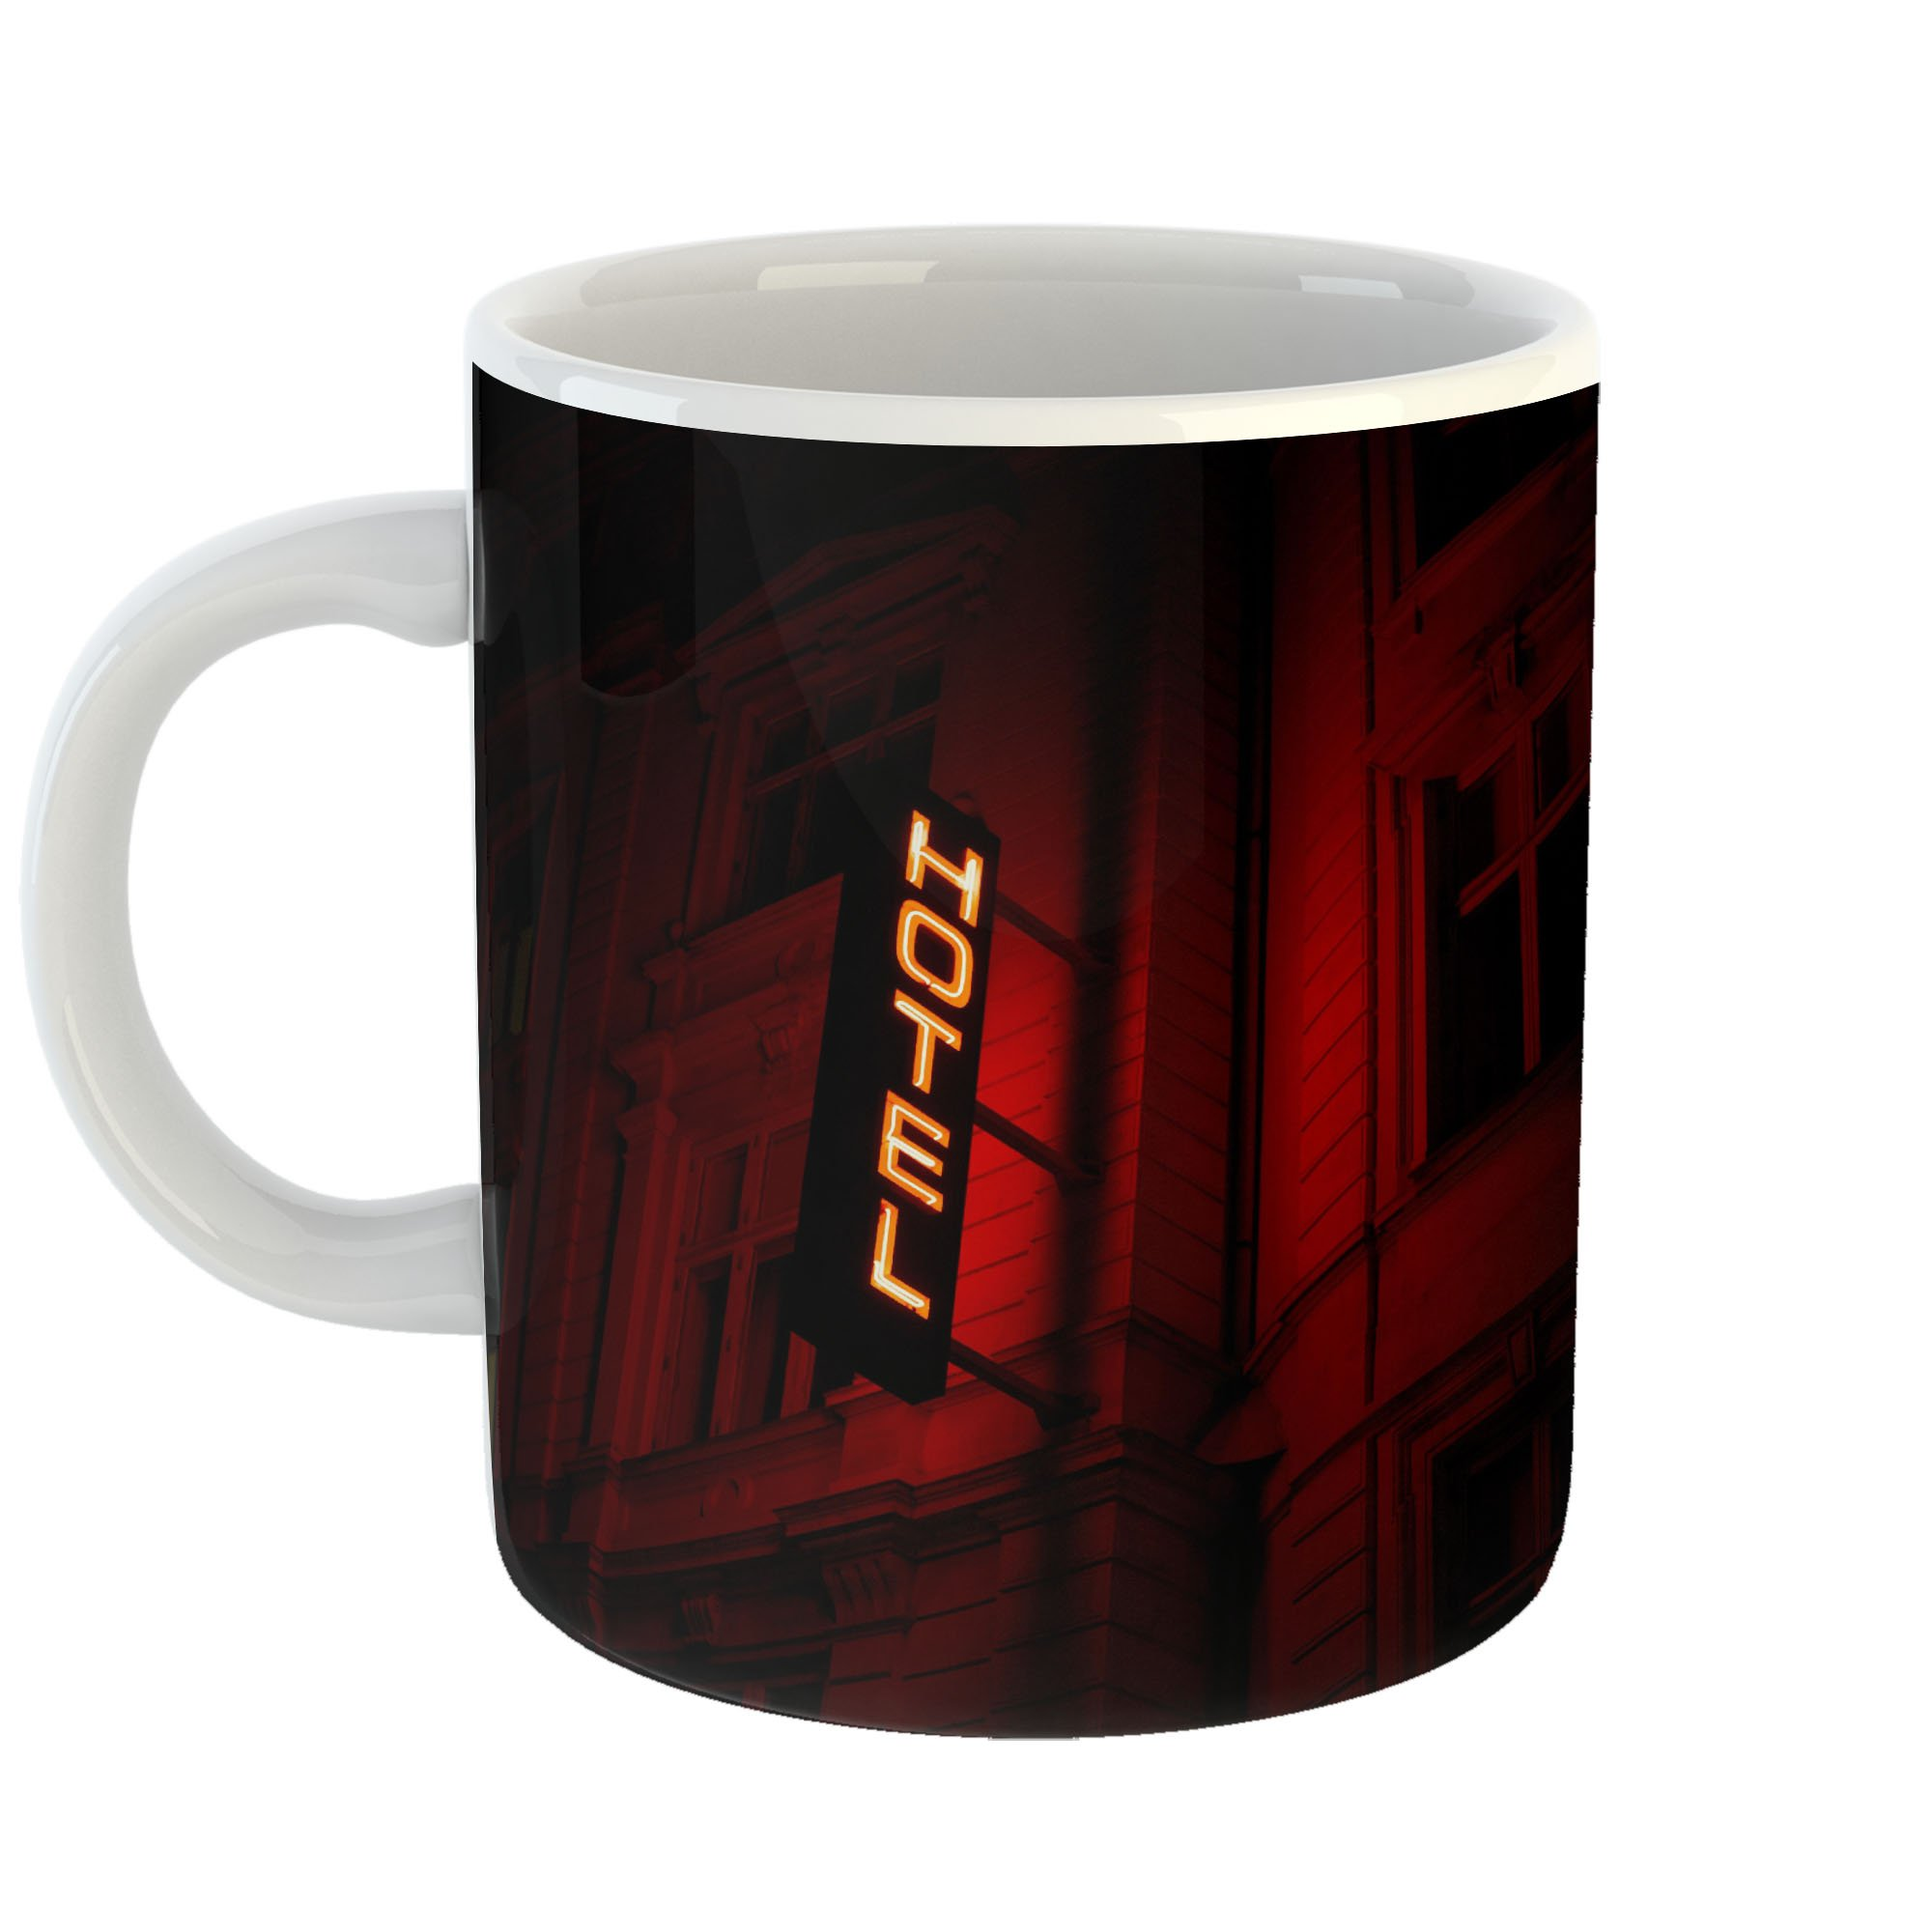 Westlake Art - City Hotel - 11oz Coffee Cup Mug - Modern Picture Photography Artwork Home Office Birthday Gift - 11 Ounce (FC8B-701A4)